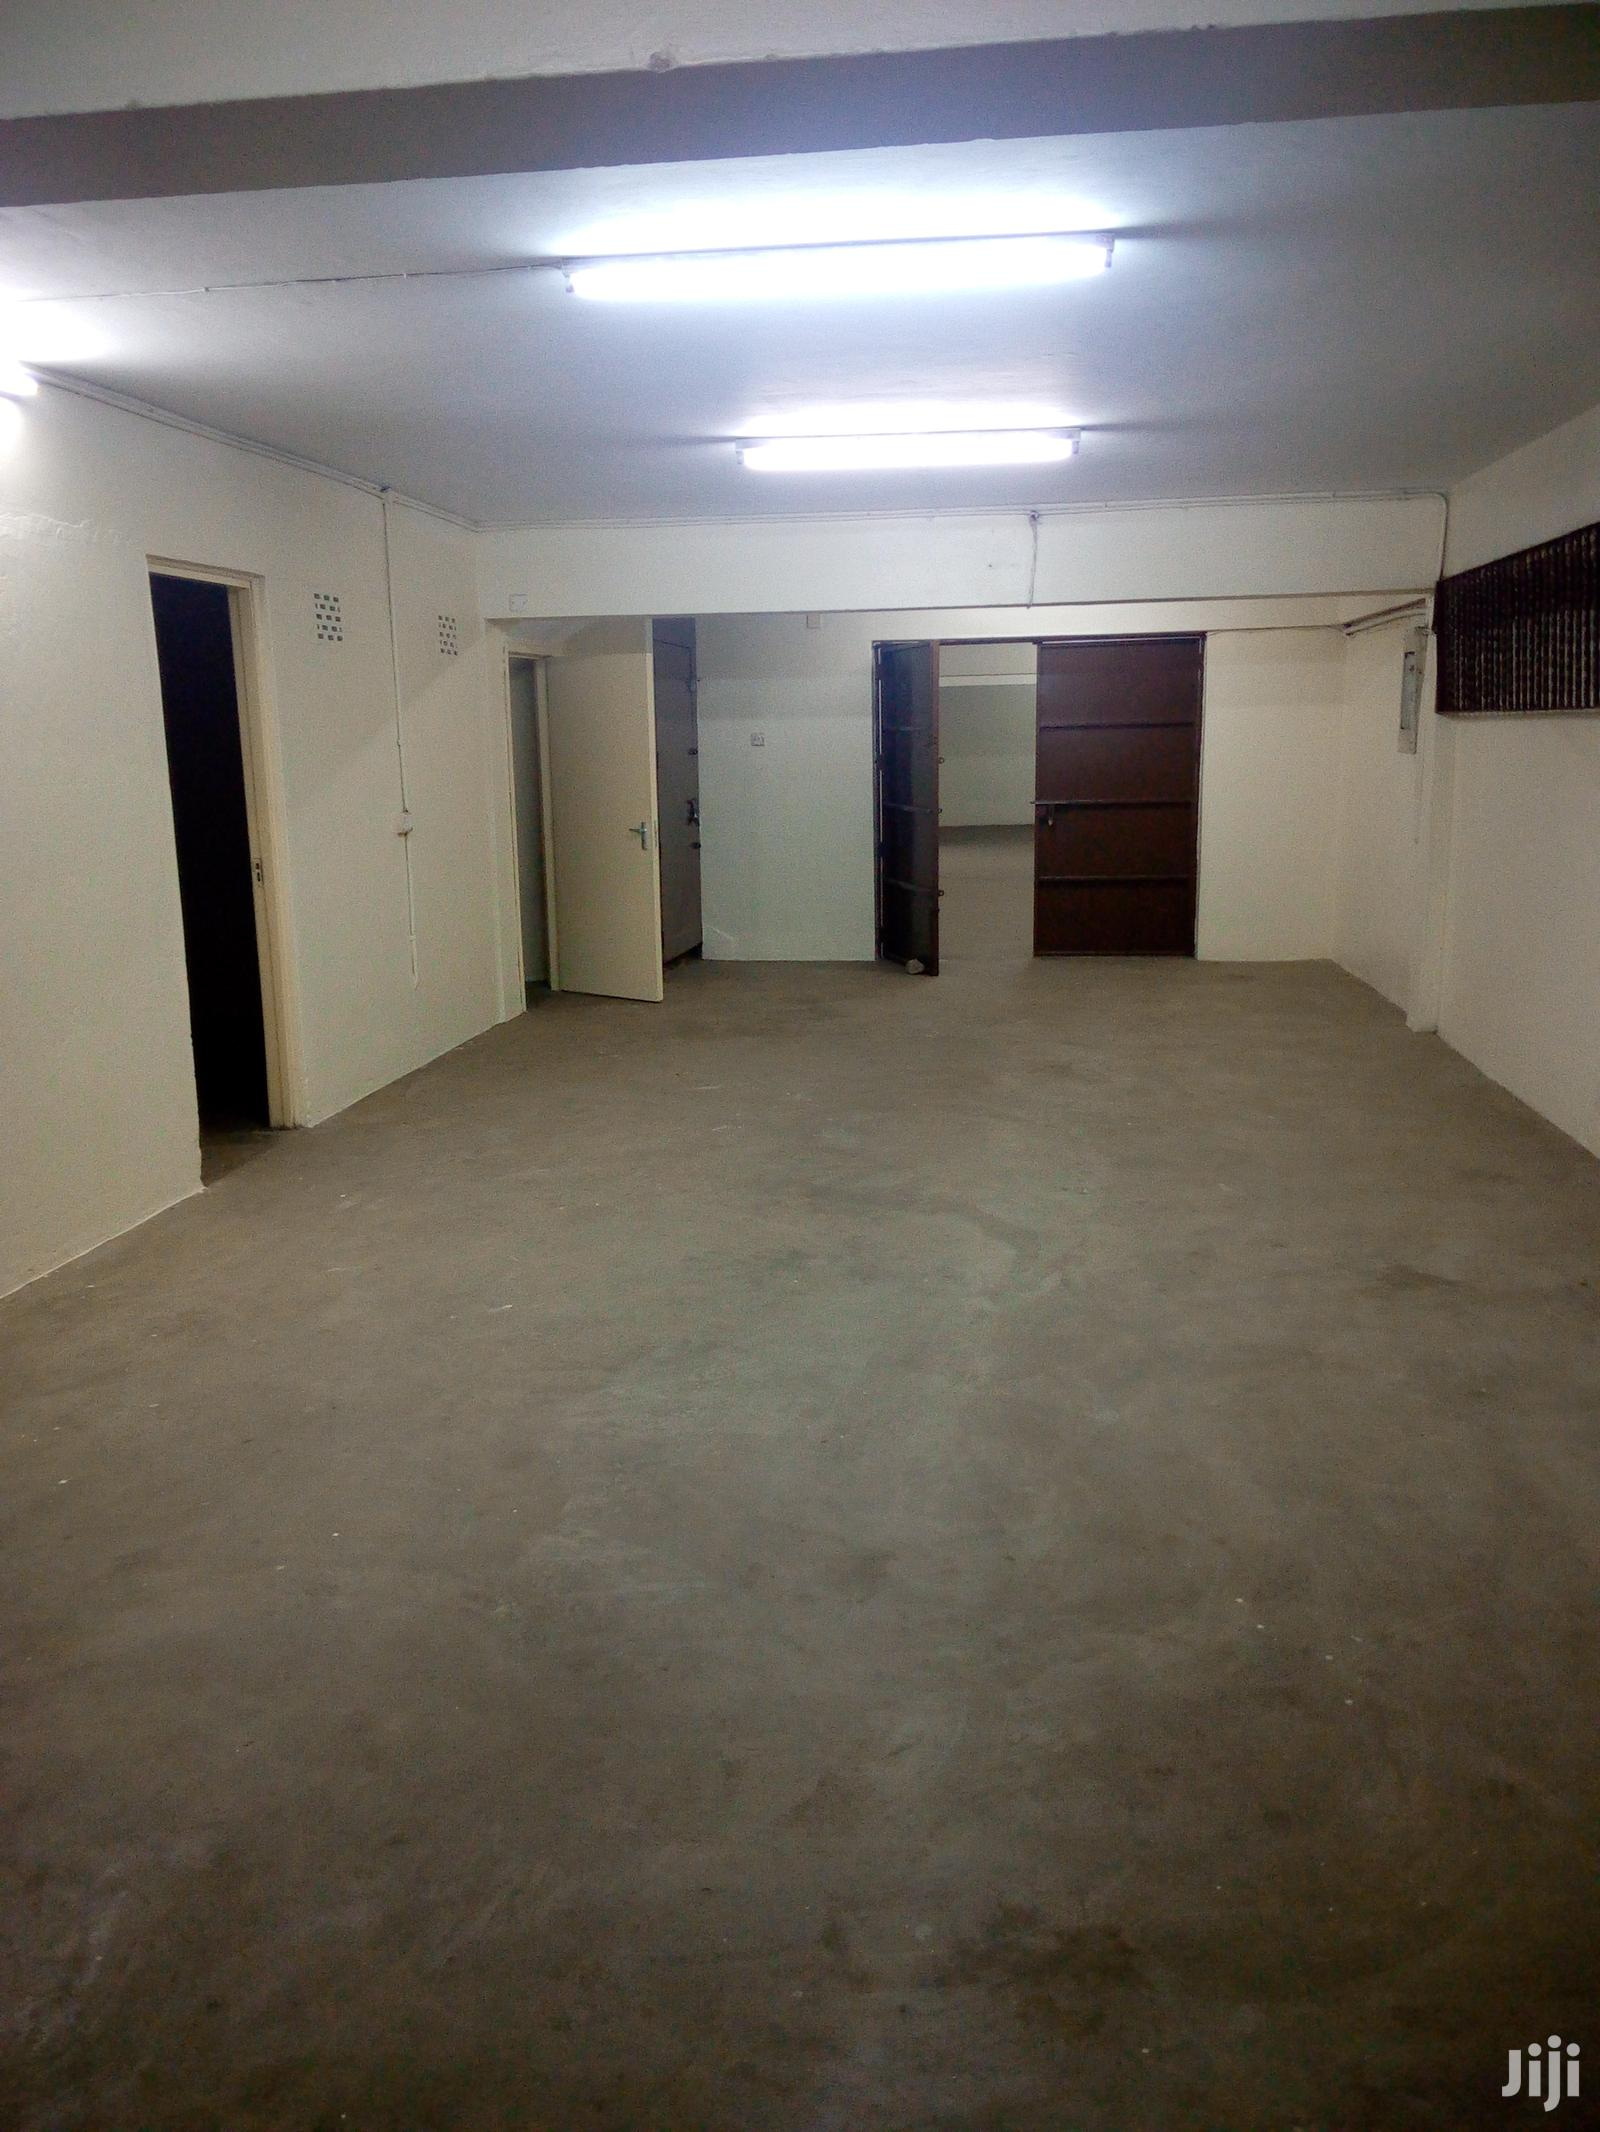 3,580sqft Warehouse for Rent on Kipande Road. | Commercial Property For Rent for sale in Nairobi Central, Nairobi, Kenya